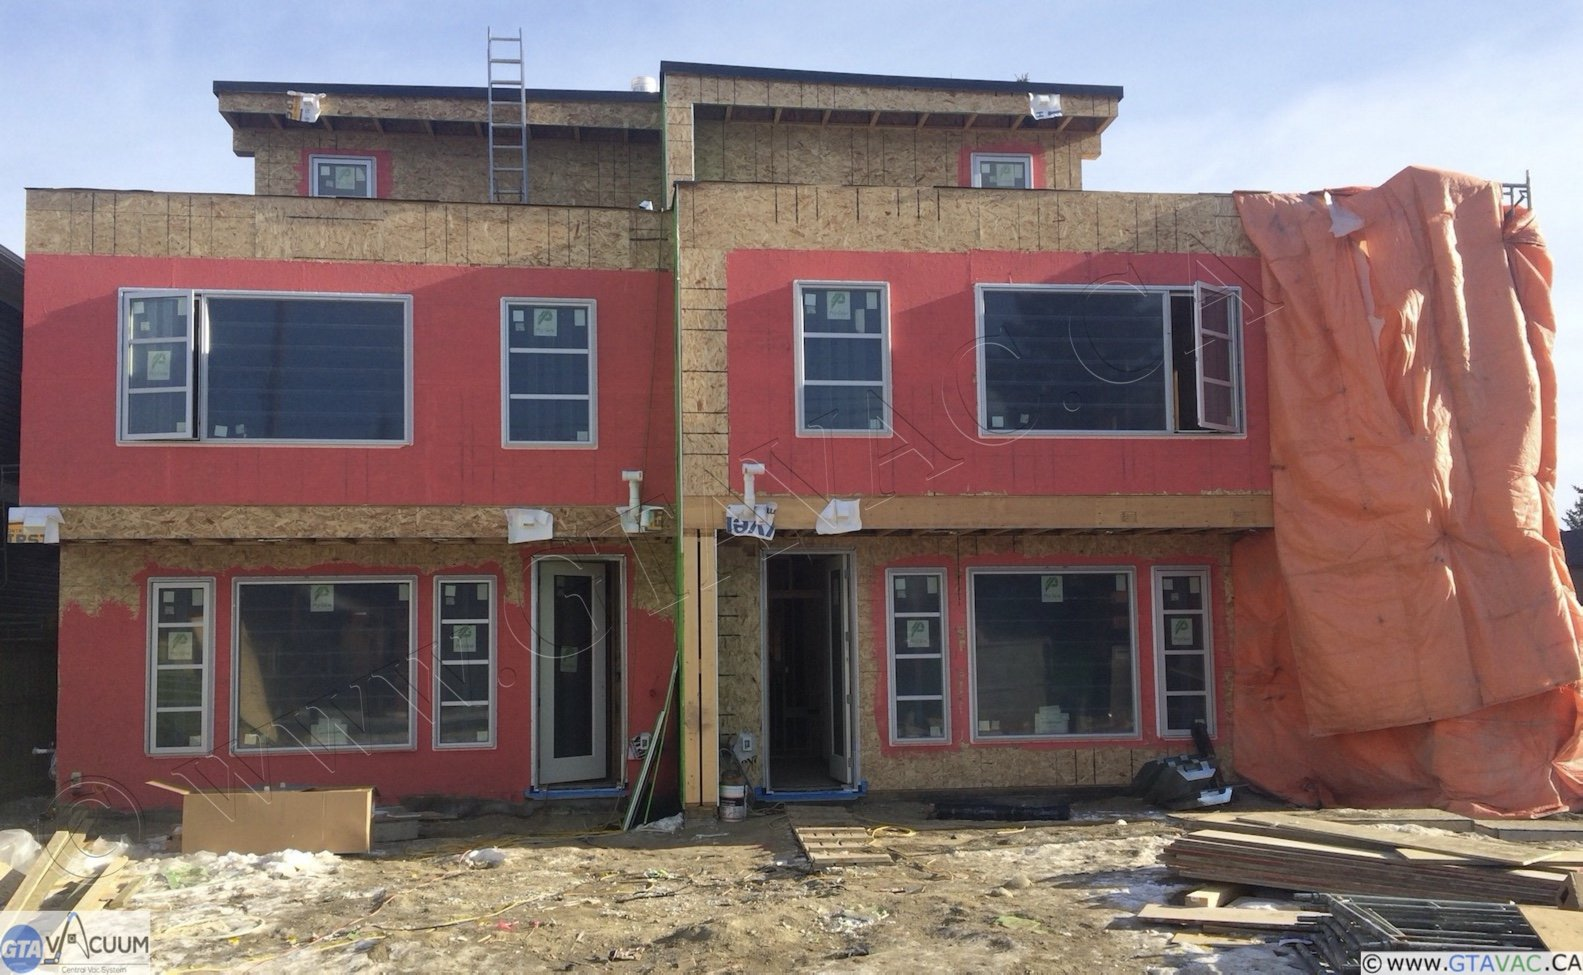 Central Vac New Construction Rough In Calgary SW AB 2014 1